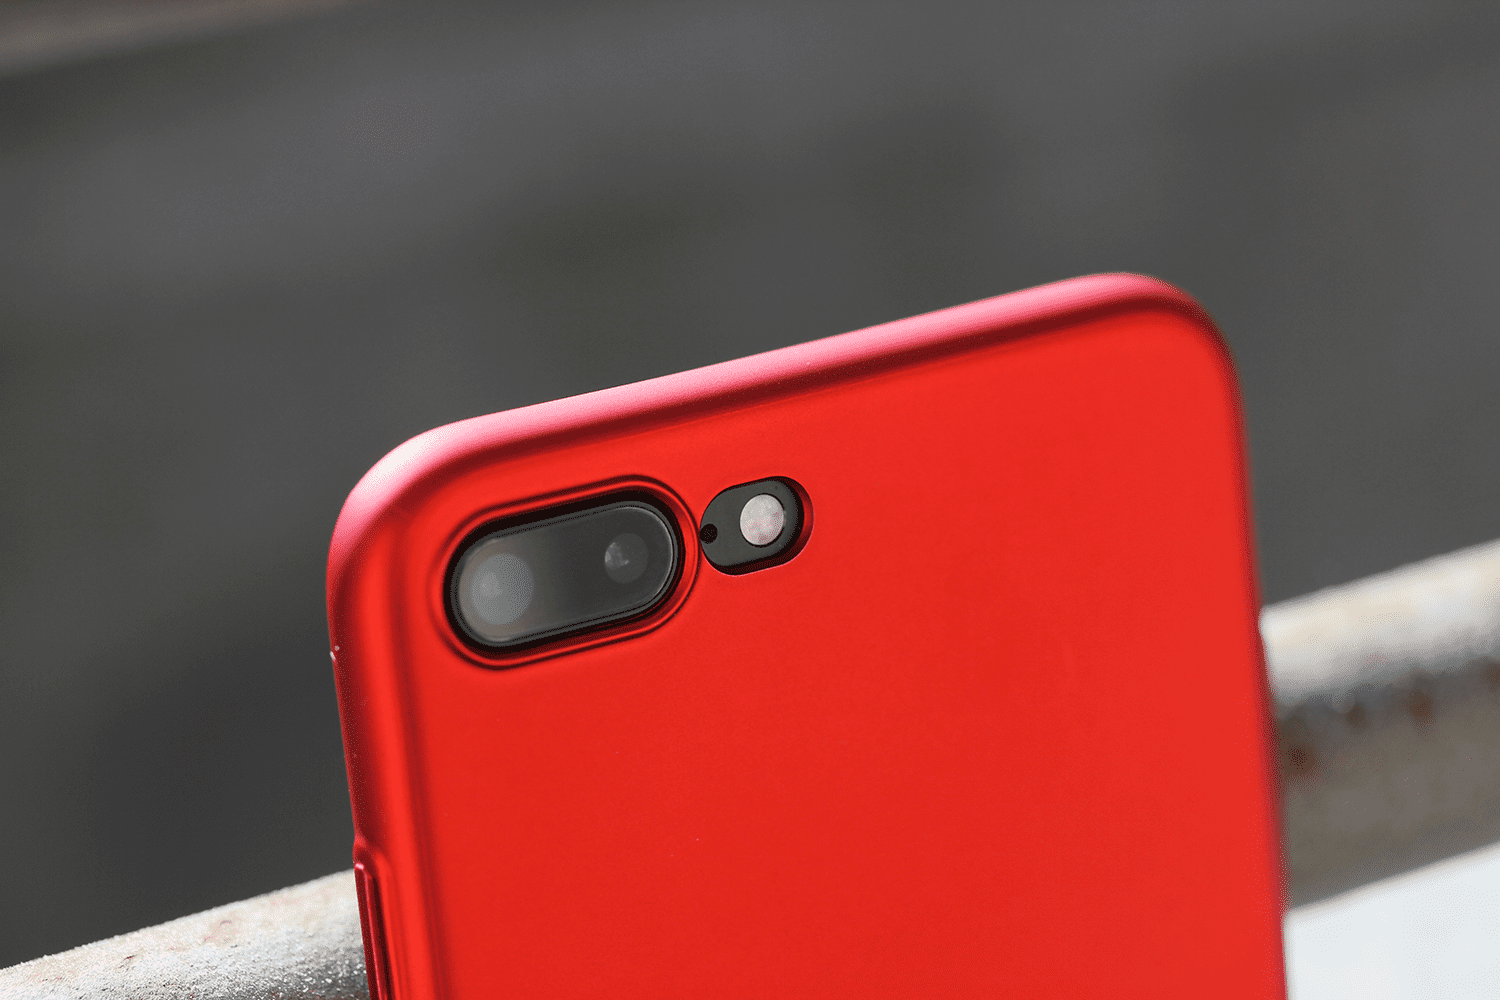 custodia rossa iphone 6s